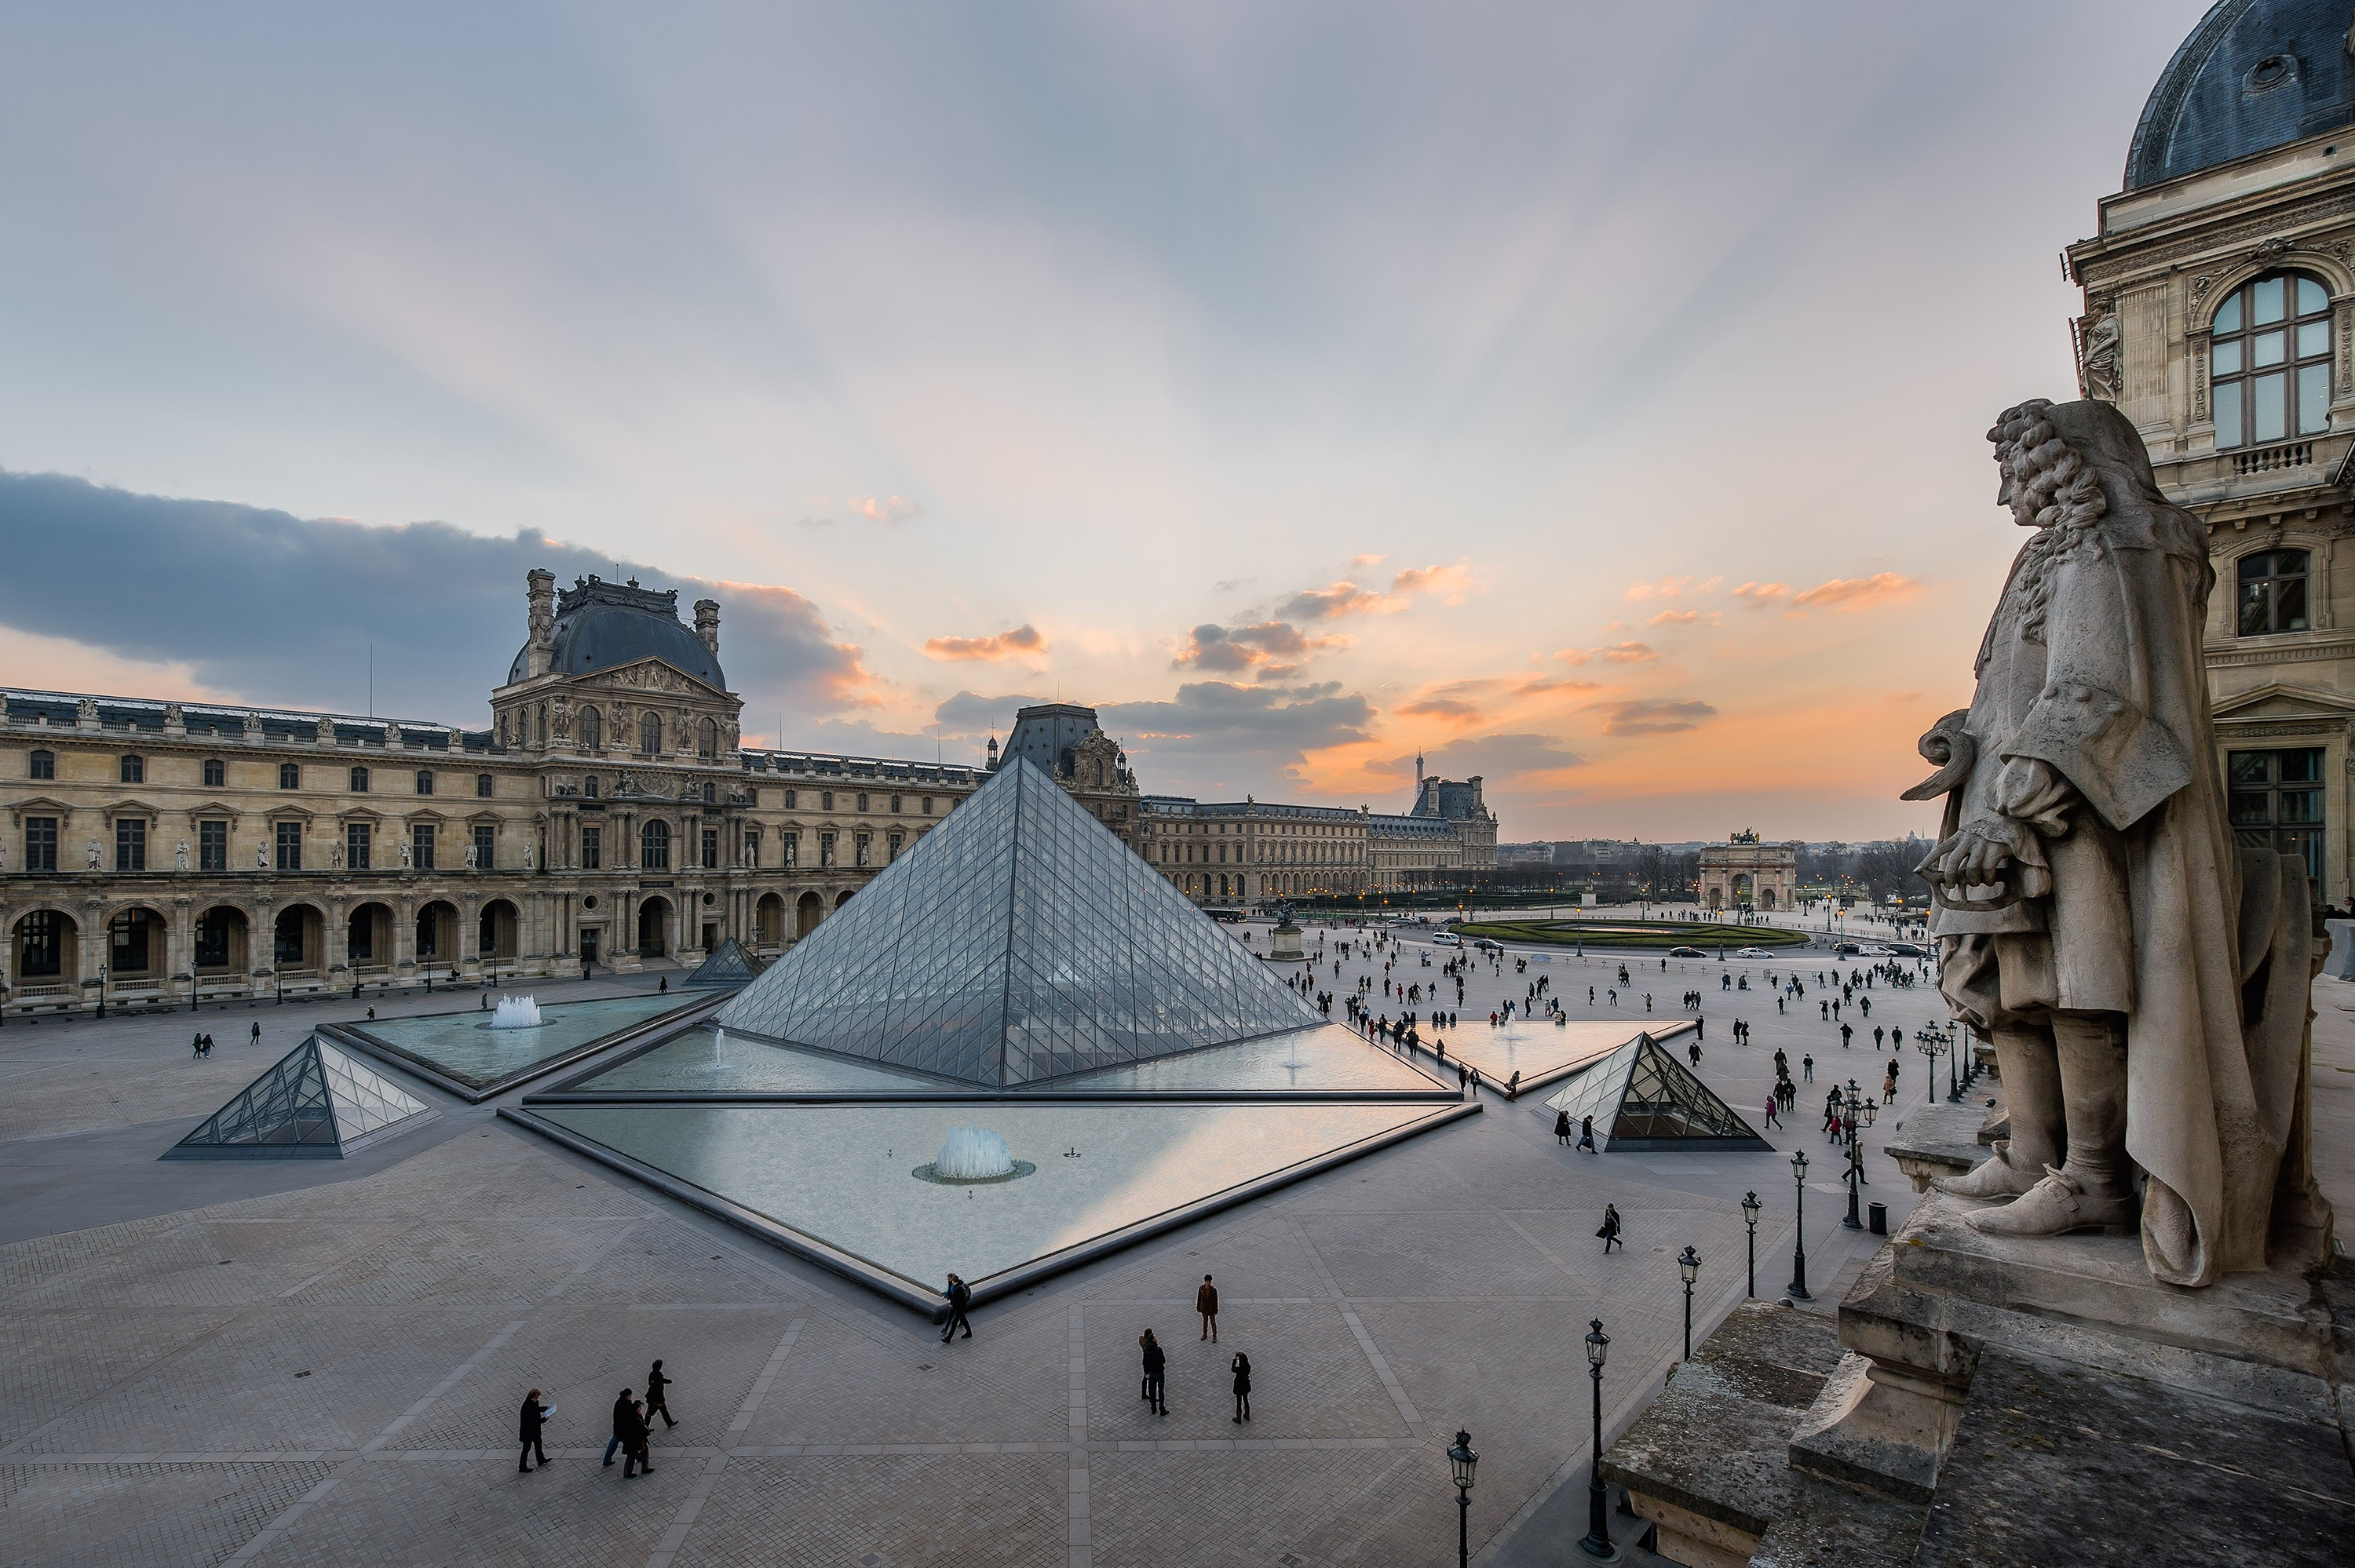 Outside view of The Louvre Museum in France